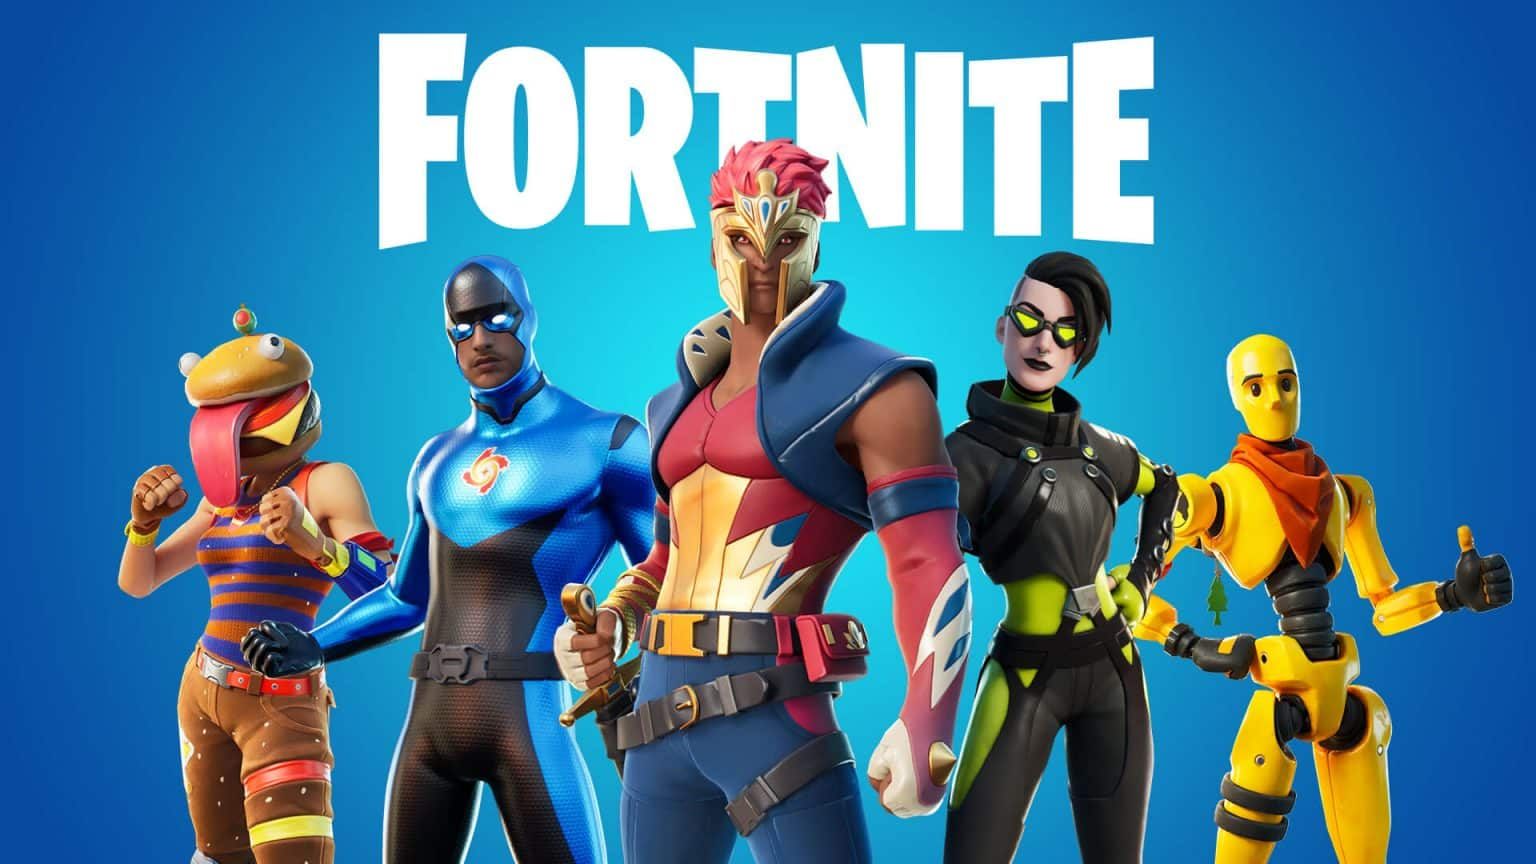 iOS14, Fortnite, and the importance of controlling distribution